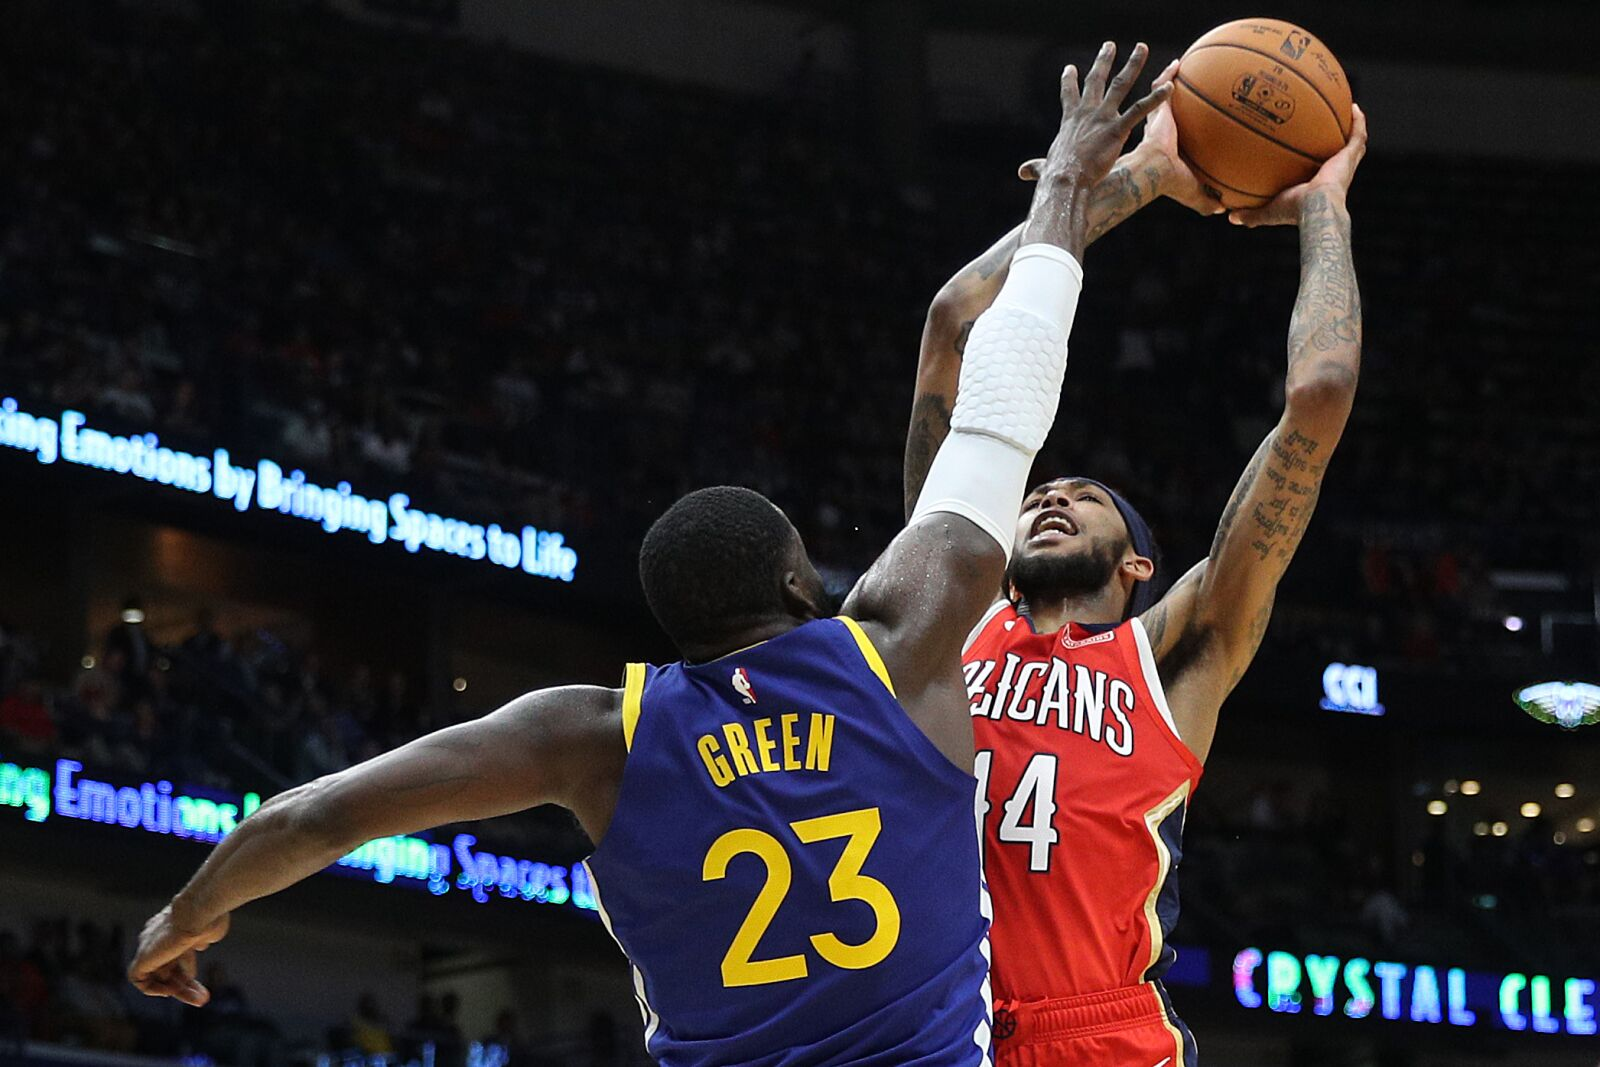 New Orleans Pelicans play host to beat-up Golden State Warriors